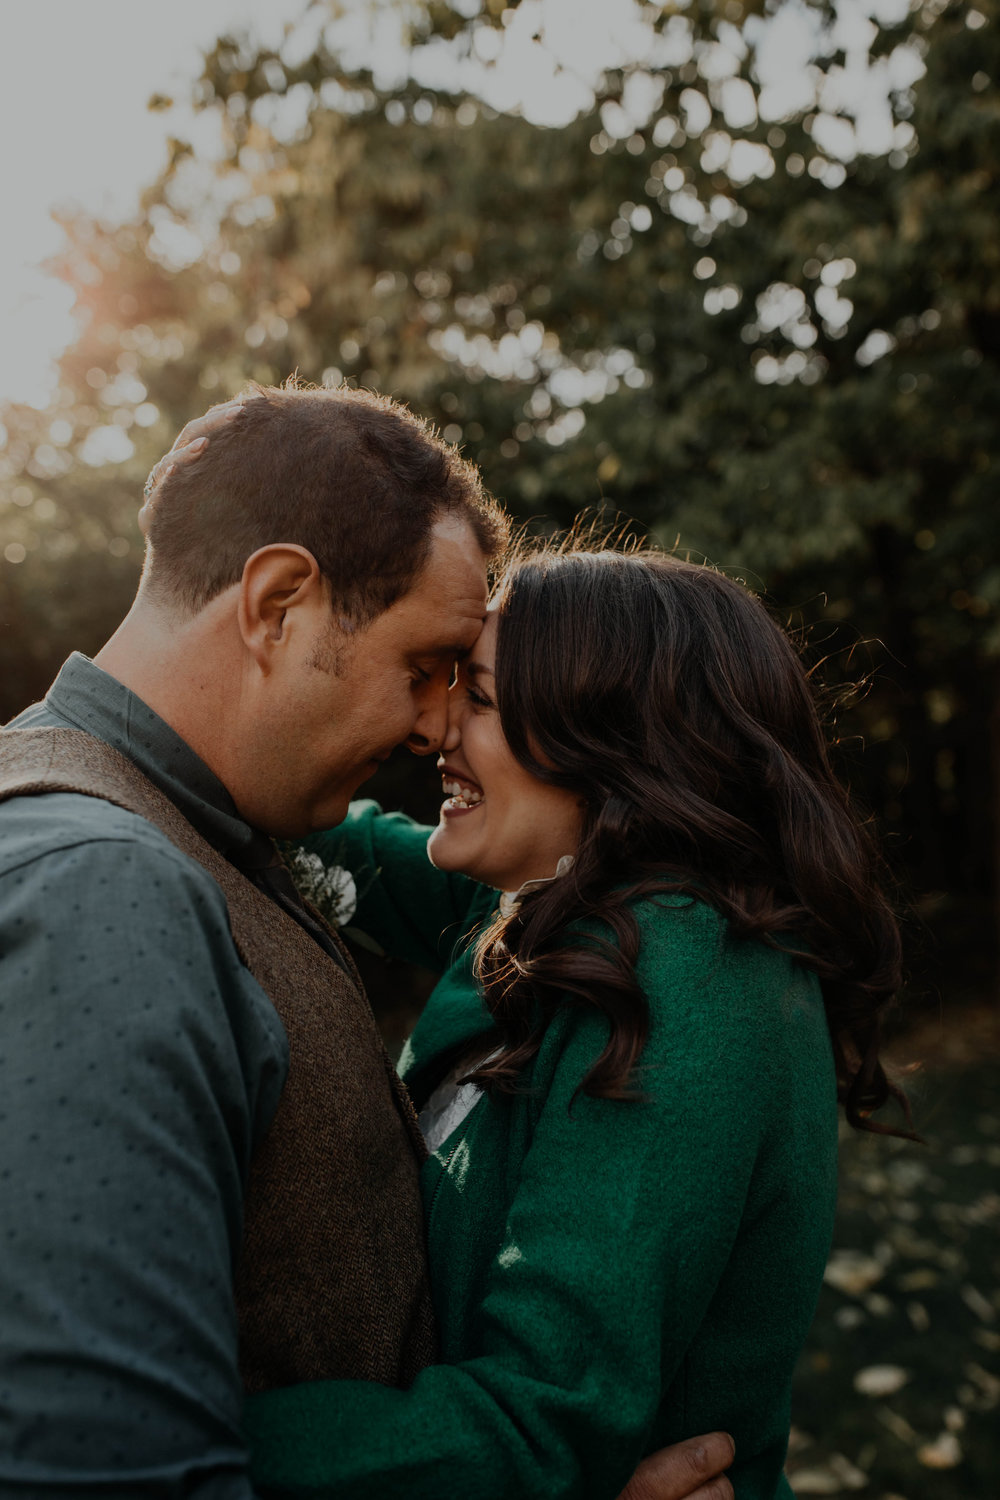 """- """"Grace is seriously THE BEST! We could not have asked for a better photographer for our wedding. She and Brandon are both so kind, professional, and personable. My husband and I felt so at ease (even though we are both naturally shy when it comes to being photographed). We are so grateful for our wedding photos and we loved our experience with Grace!""""ASHLEY + JON"""